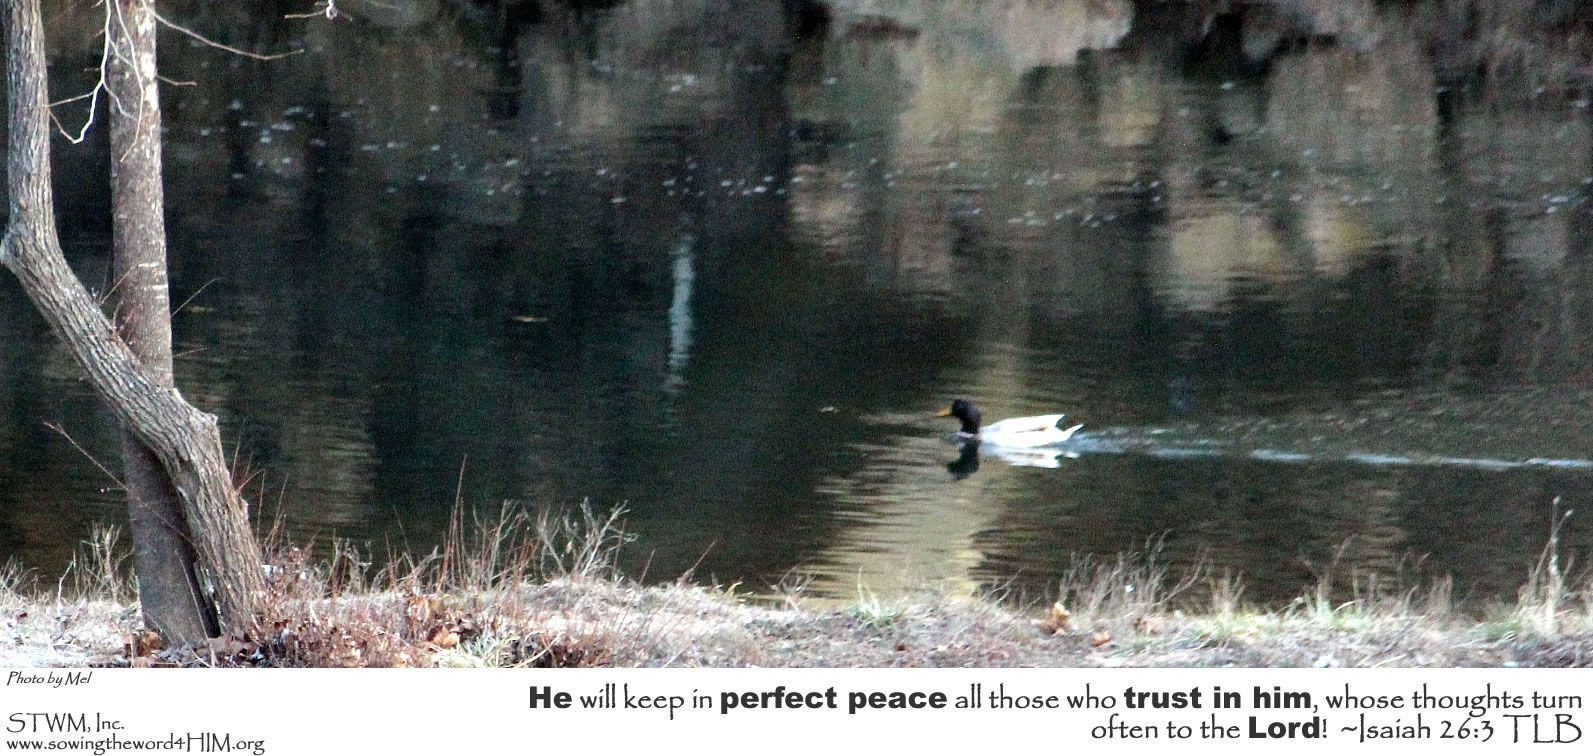 He will keep in perfect peace all those who trust in him, whose thoughts turn often to the Lord!  ~Isaiah 26:3 TLB